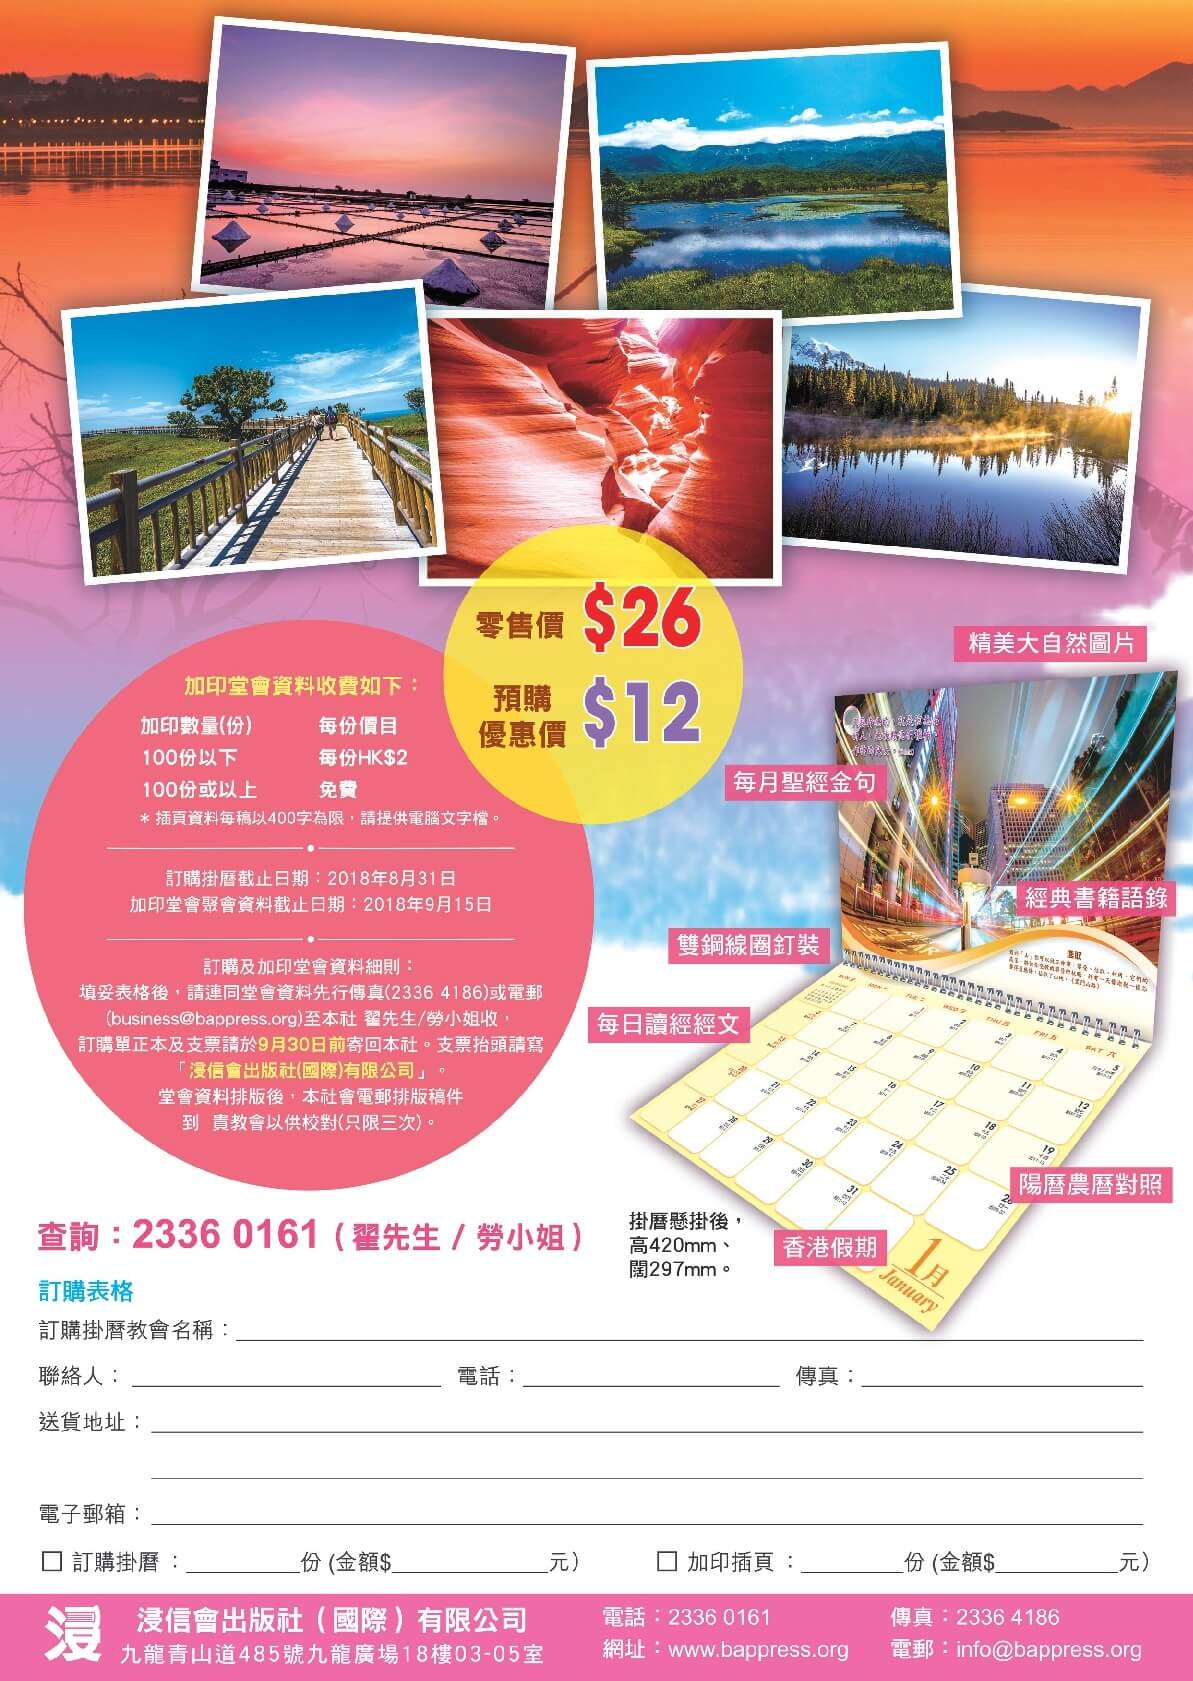 Leaflet for 2019 Page2 毋忘初心   2019年月曆